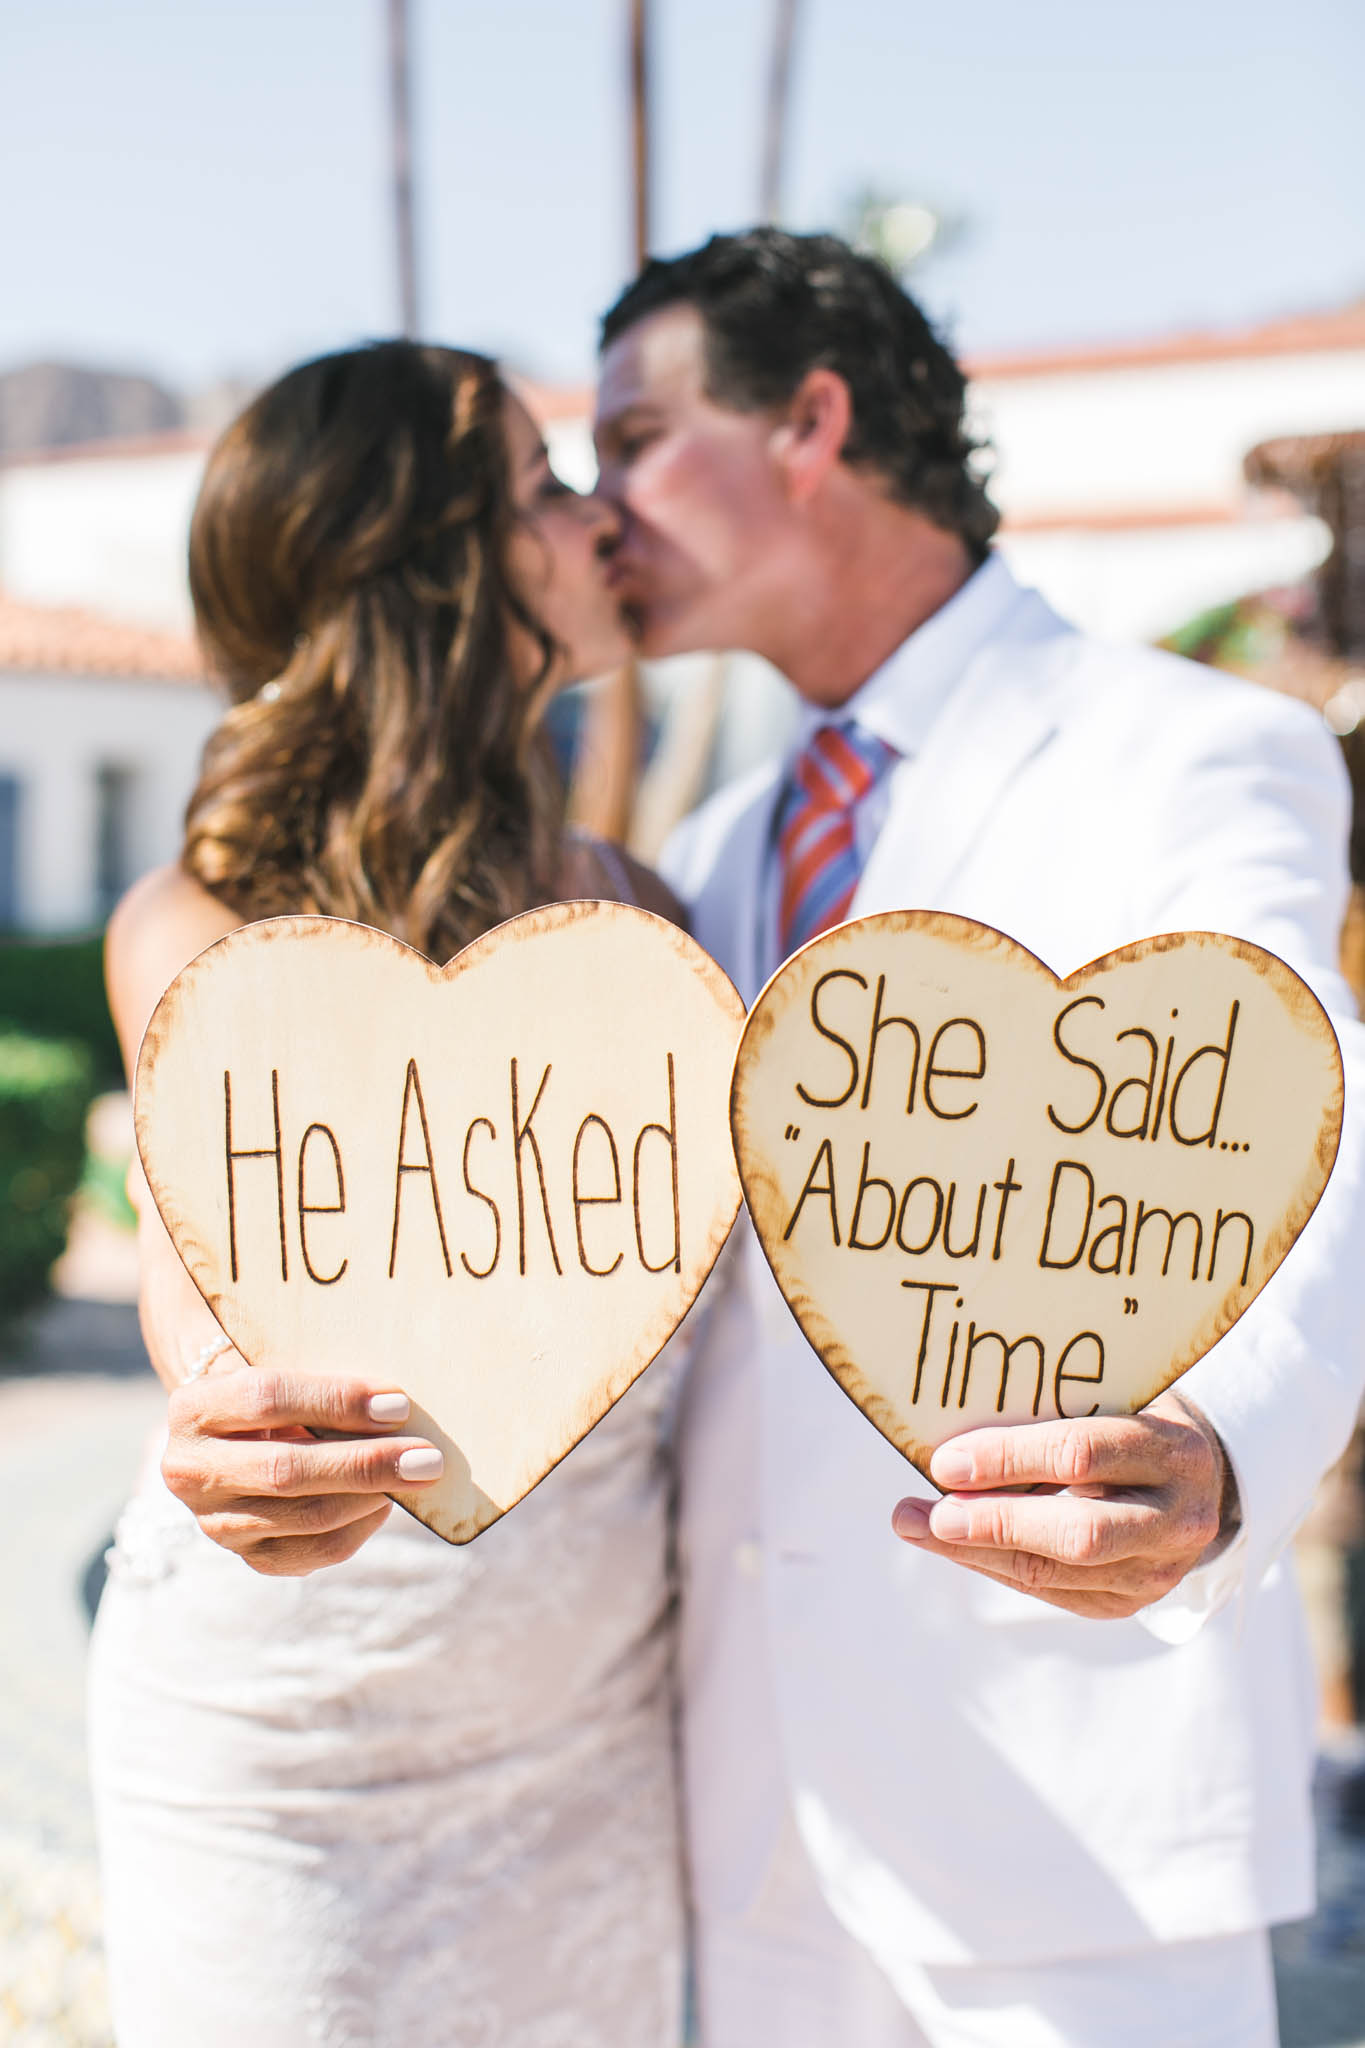 He asked, she said about damn time wedding photos